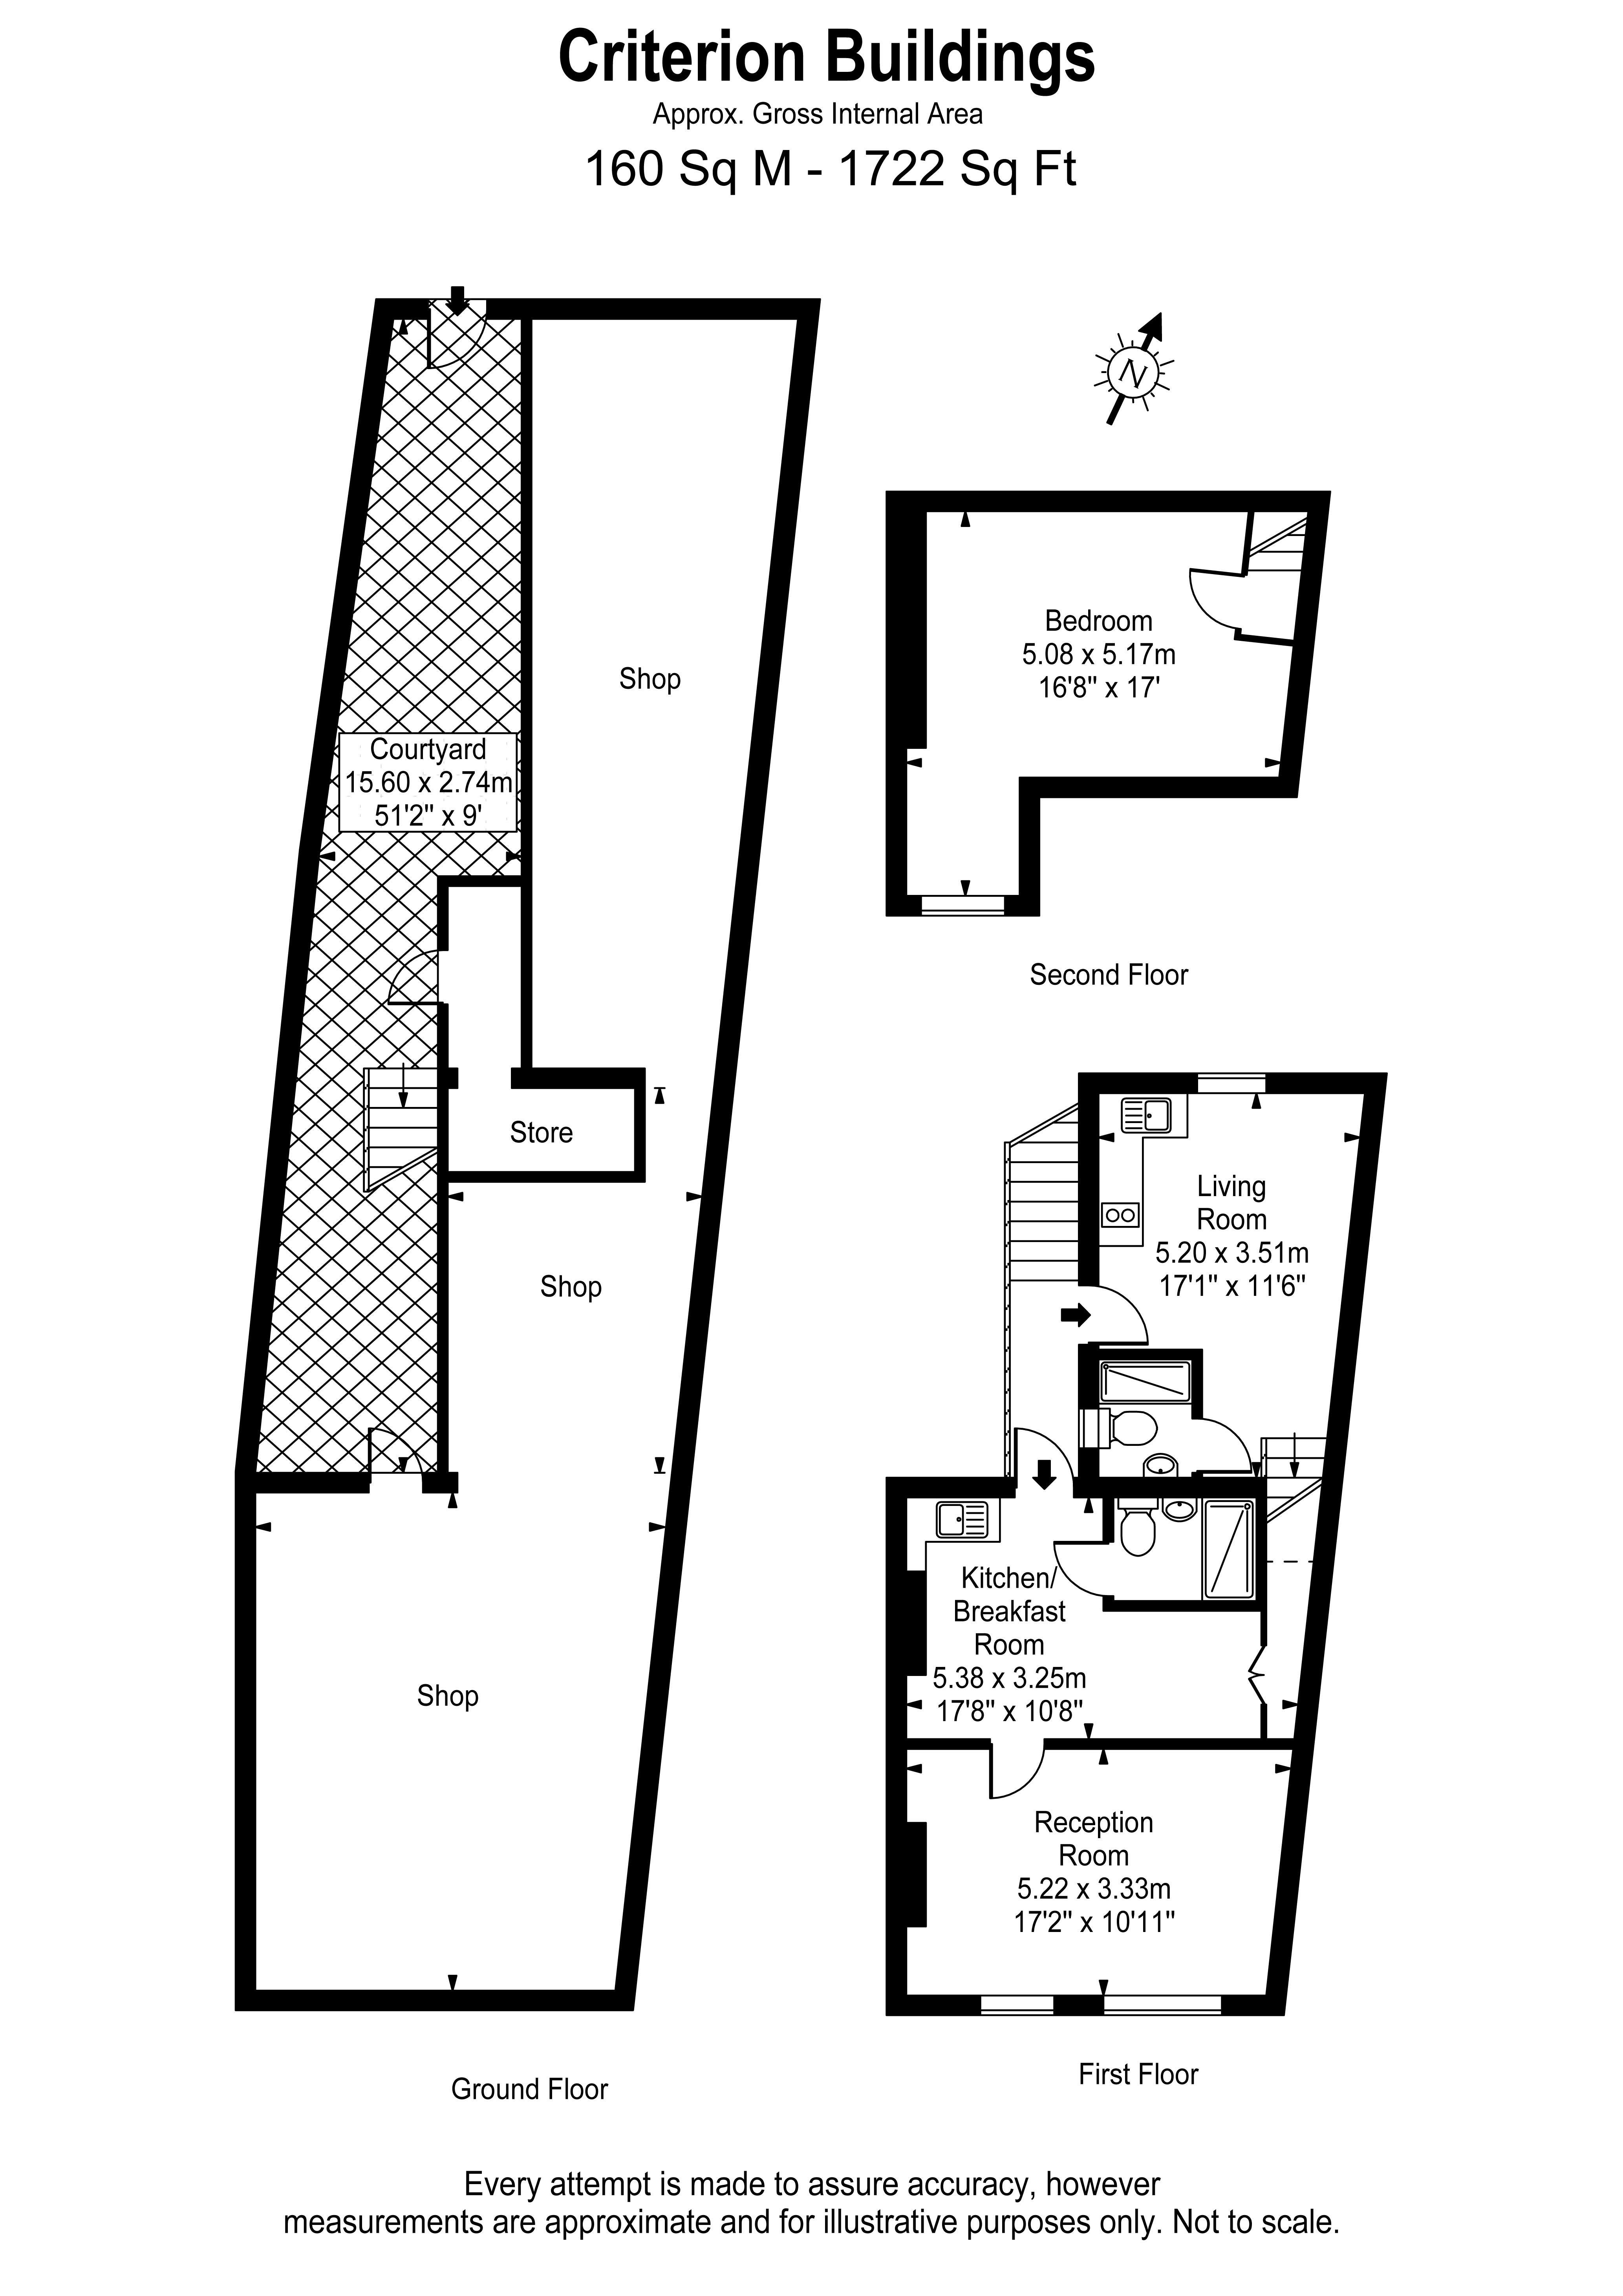 Floorplans For Criterion Buildings,  Portsmouth Road, Thames Ditton